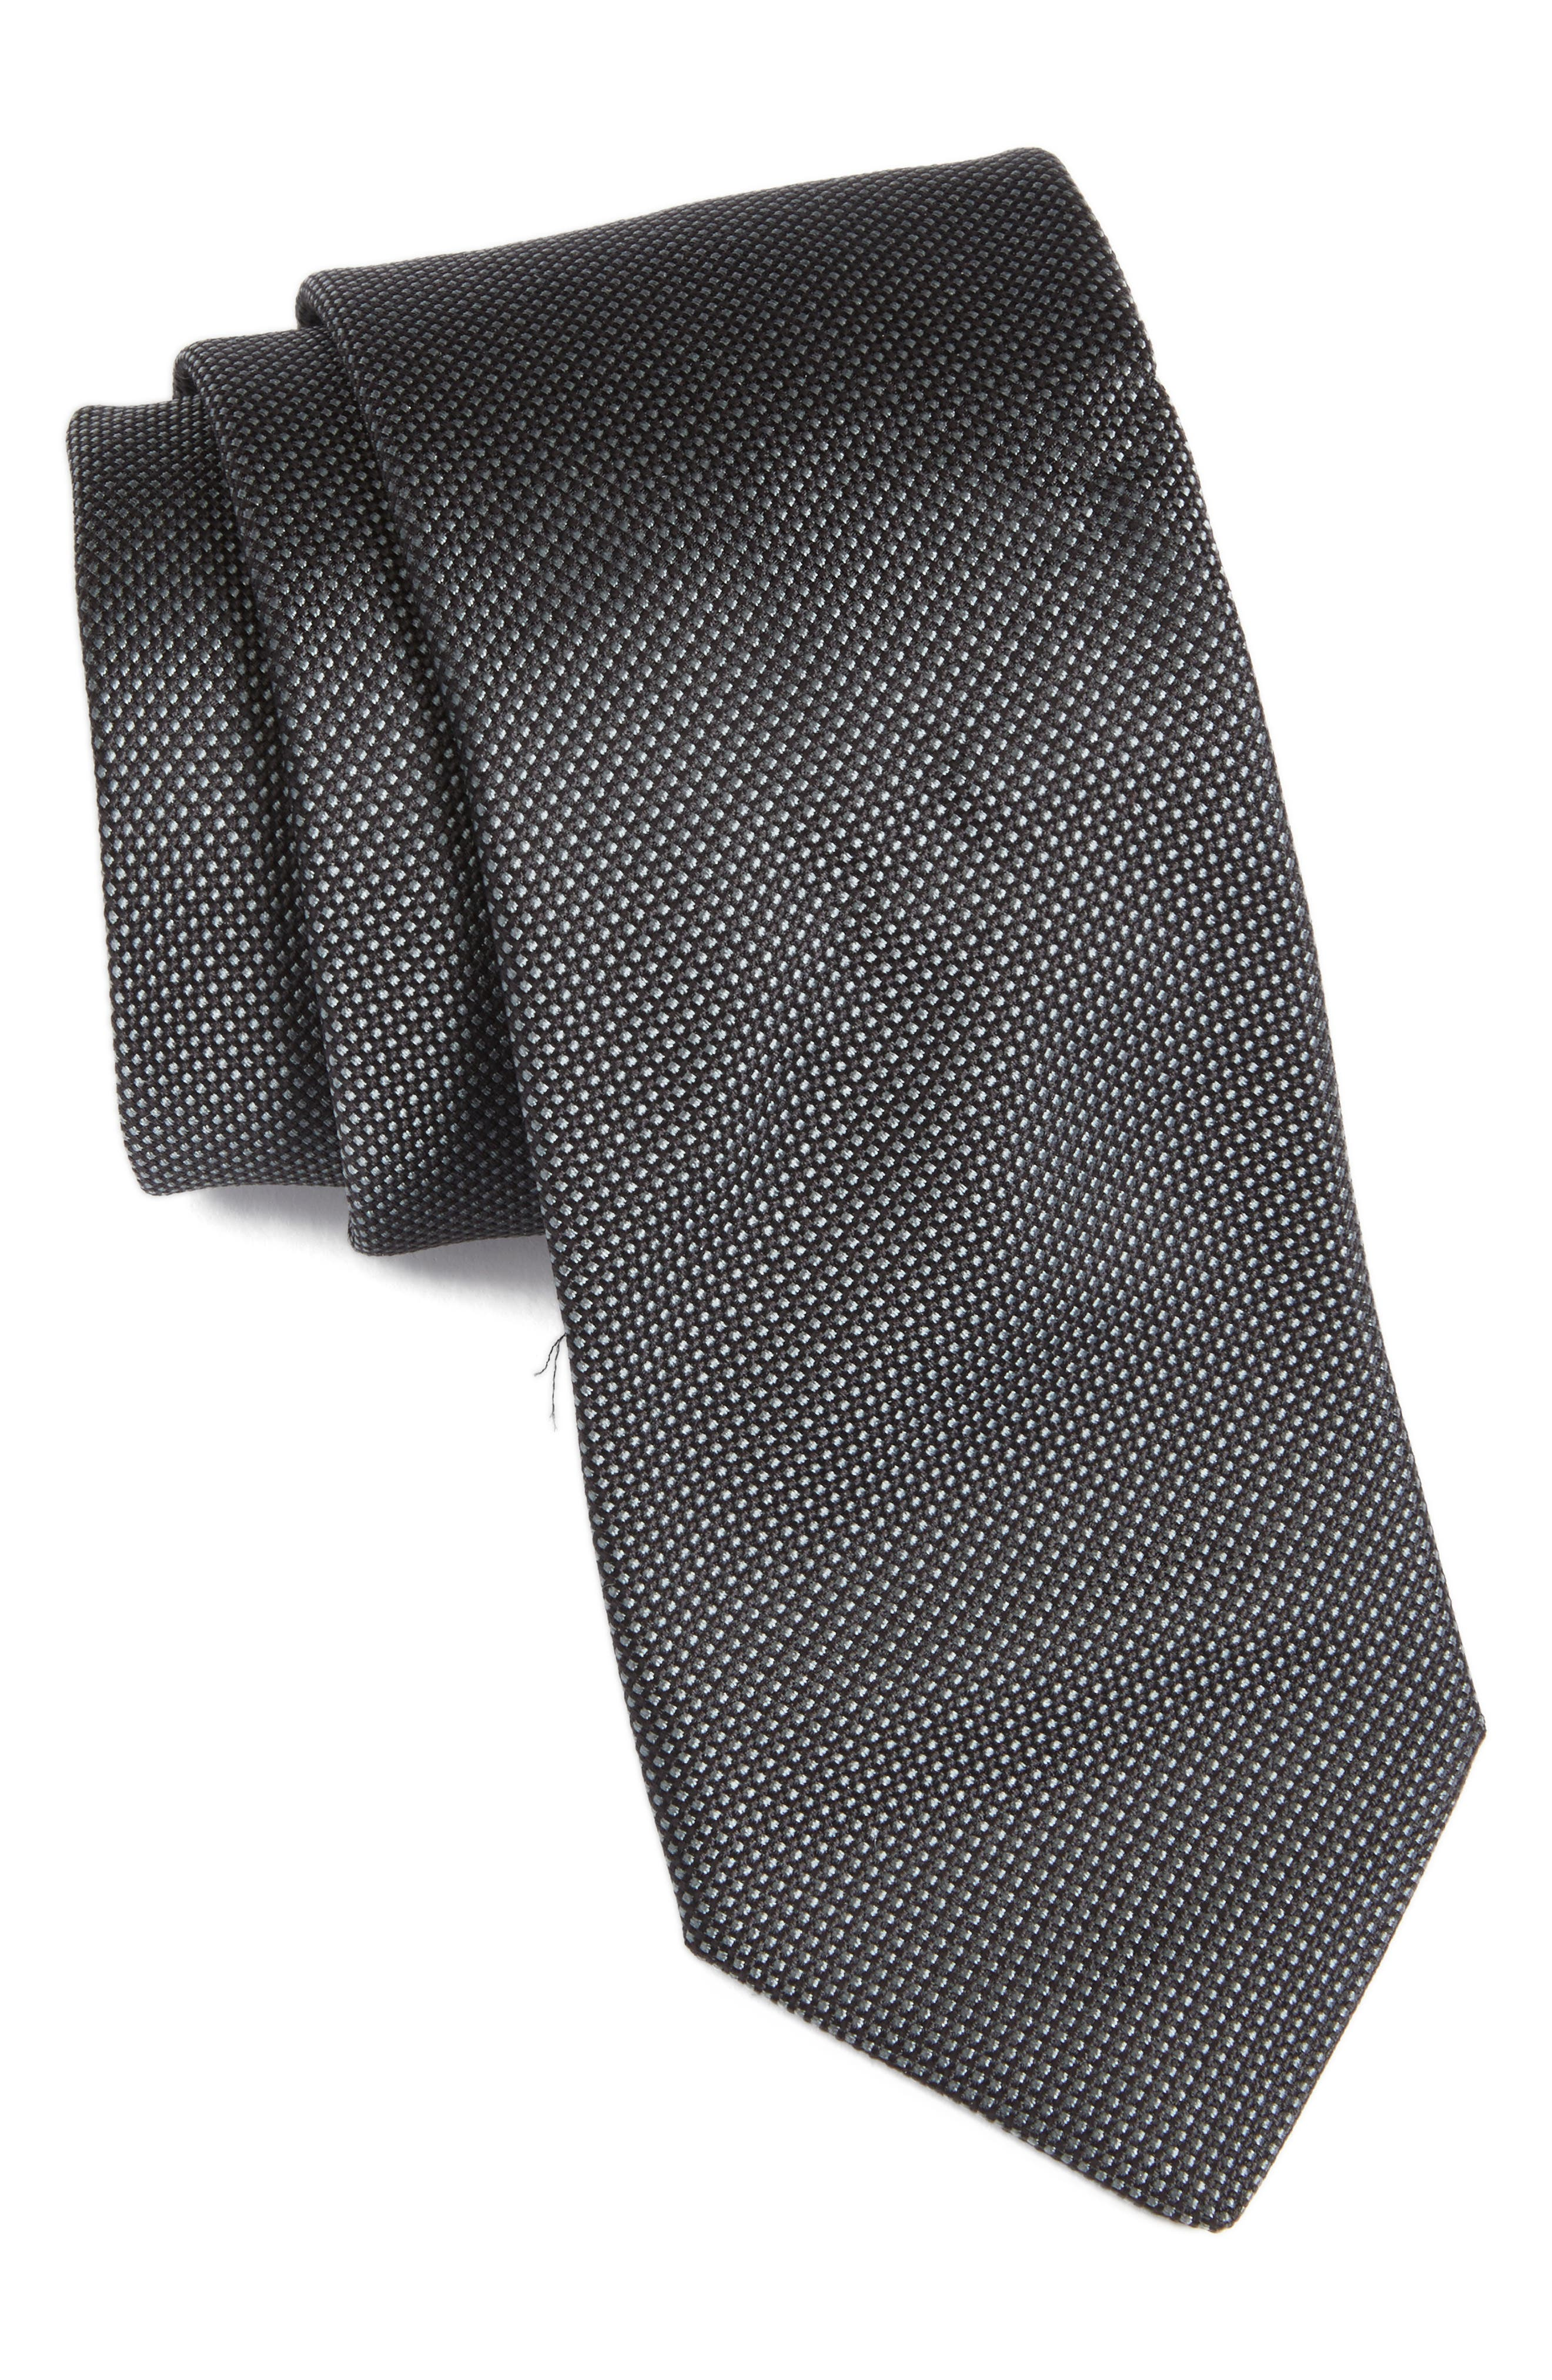 Solid Silk Tie,                         Main,                         color, 001